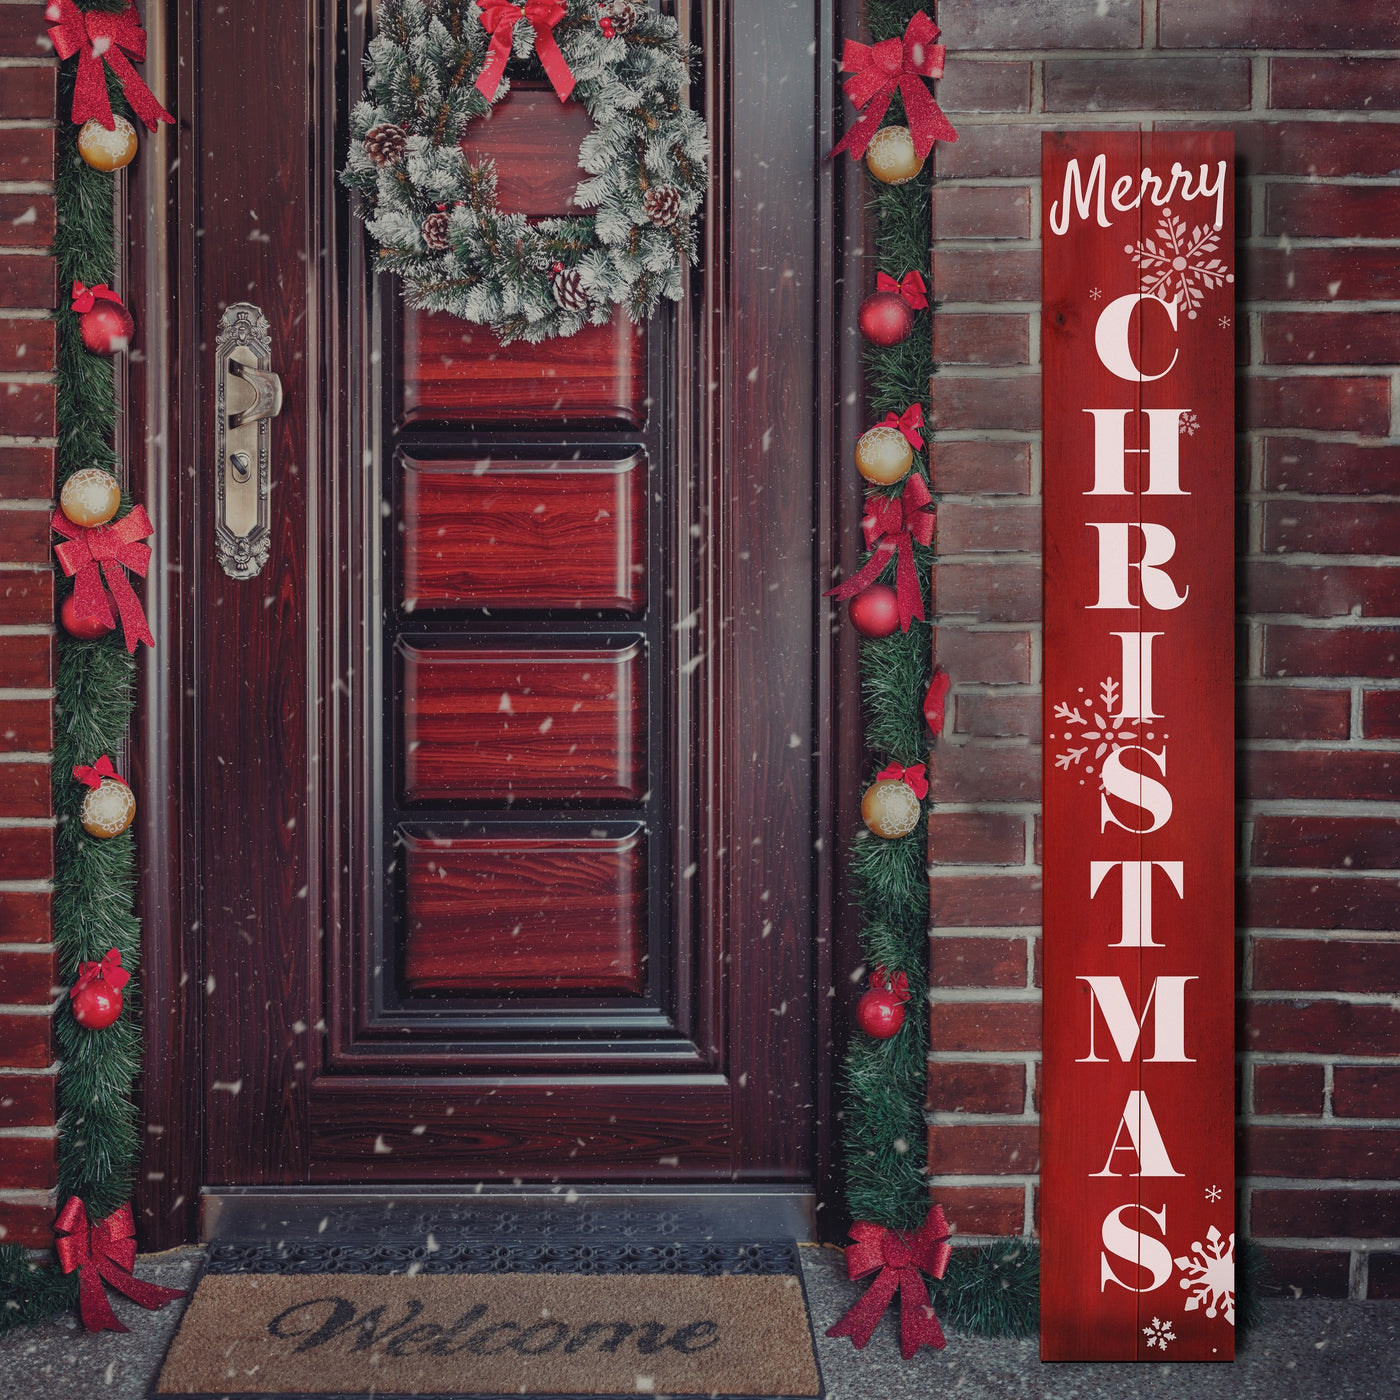 Large Christmas Stencils For Wood.Farmhouse Sign Stencils For Painting On Wood Diy Home Decor